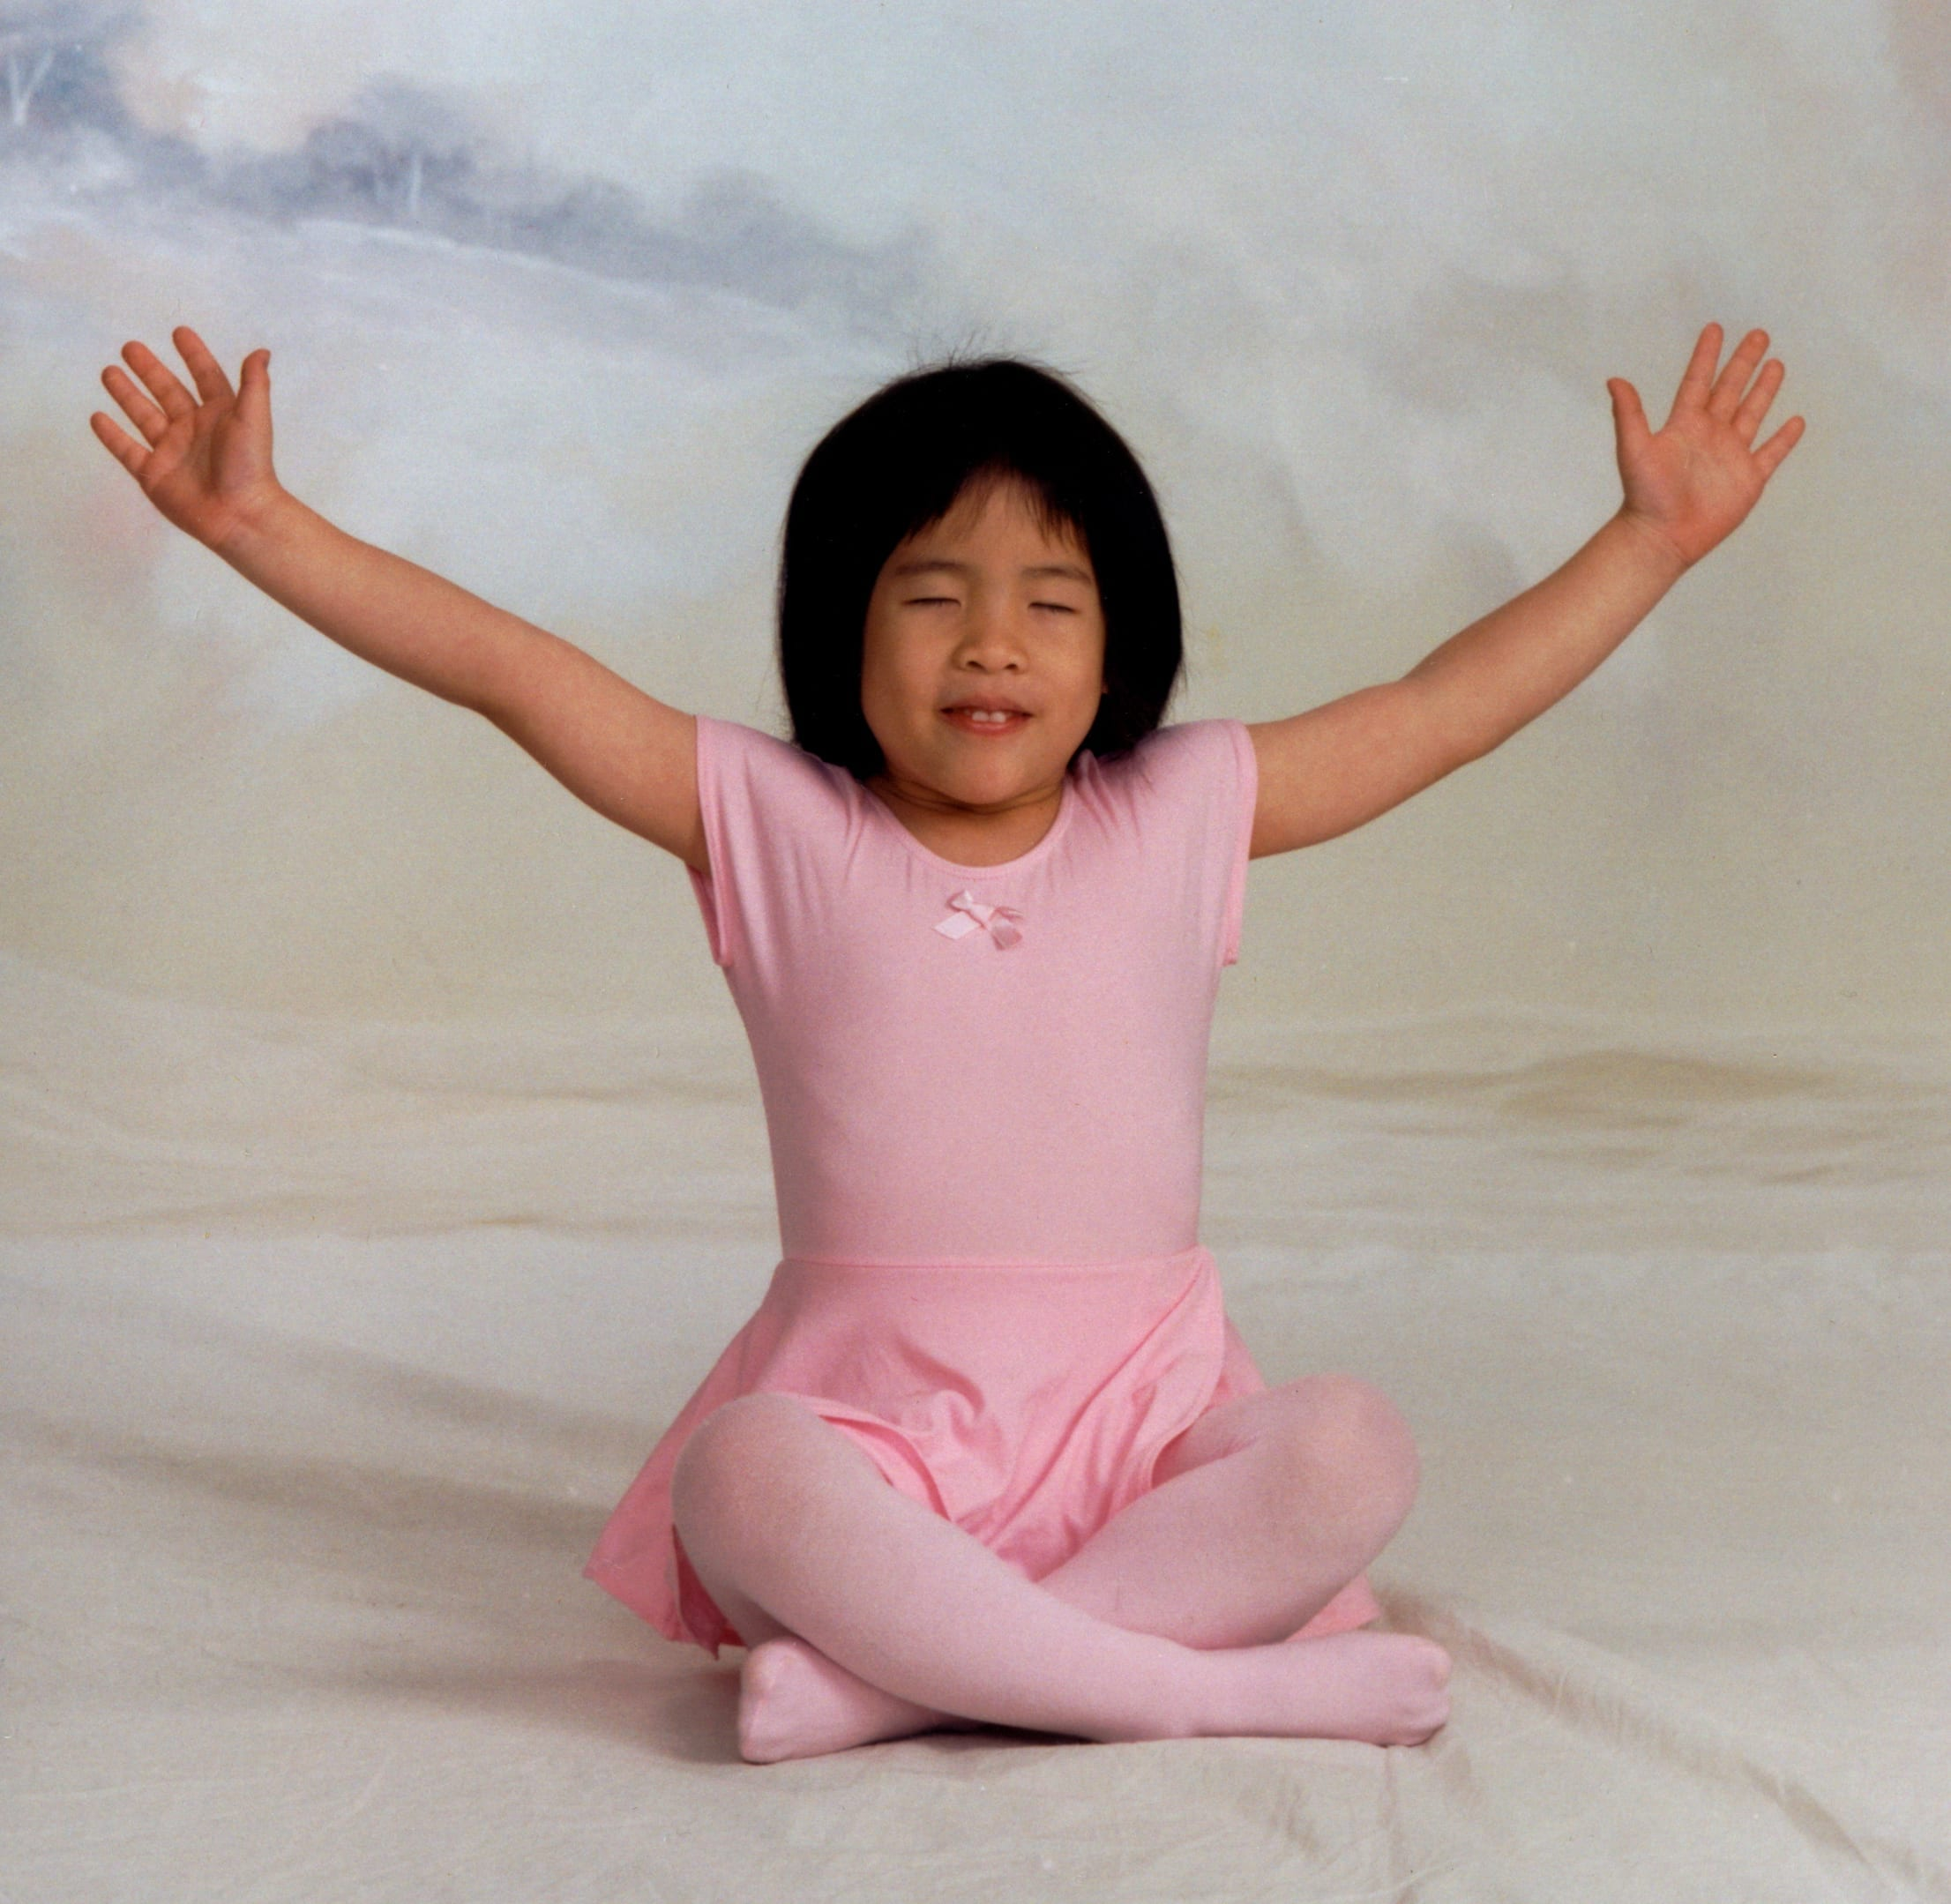 Yoga Helps Children With Adhd >> Moving Into New Territory Yoga For Children With Adhd Autism